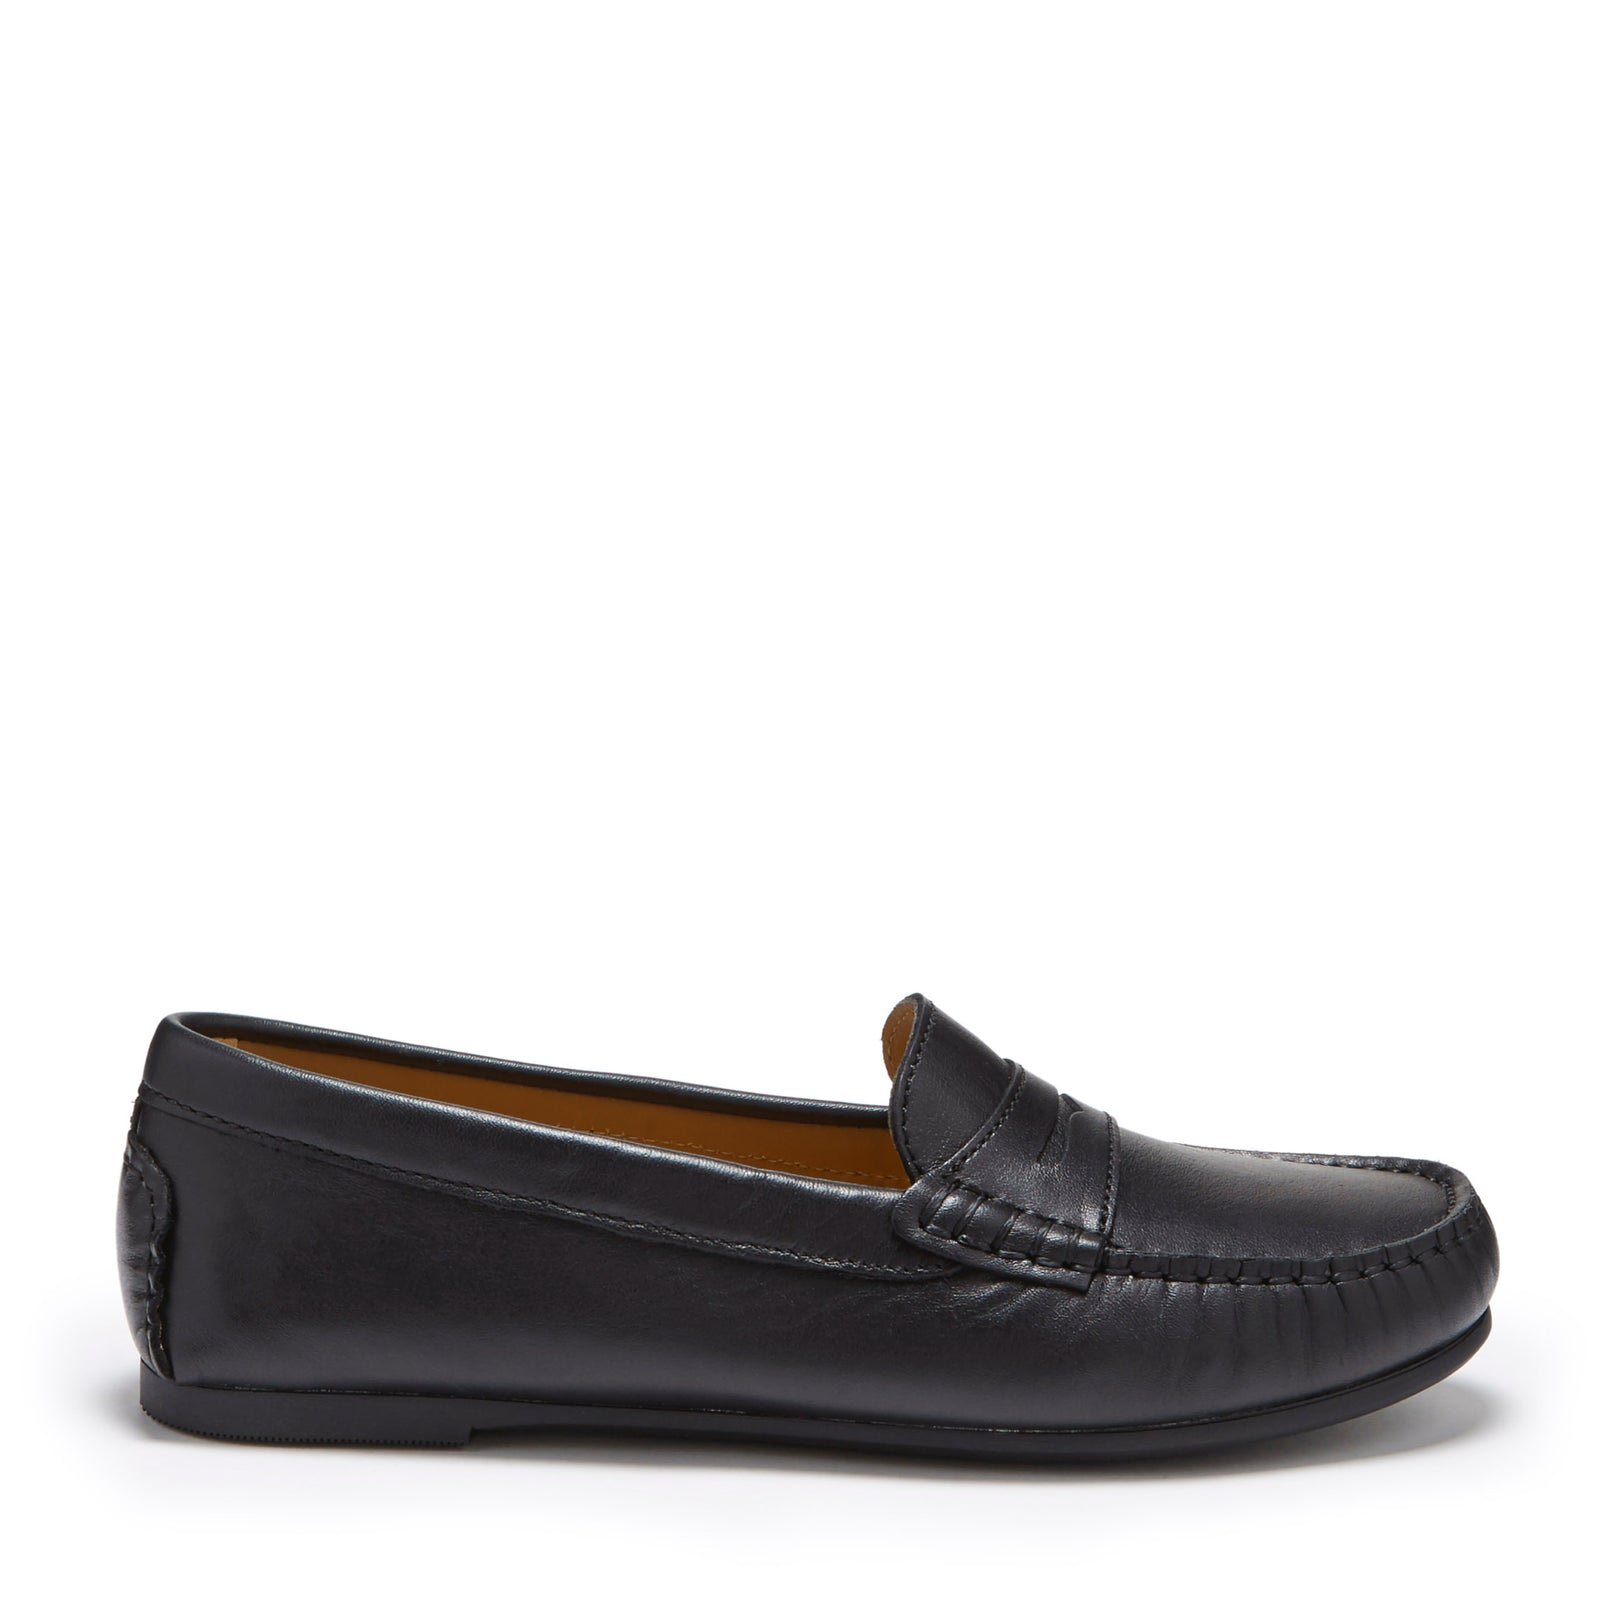 518e2a227fc Women s Penny Driving Loafers Full Rubber Sole